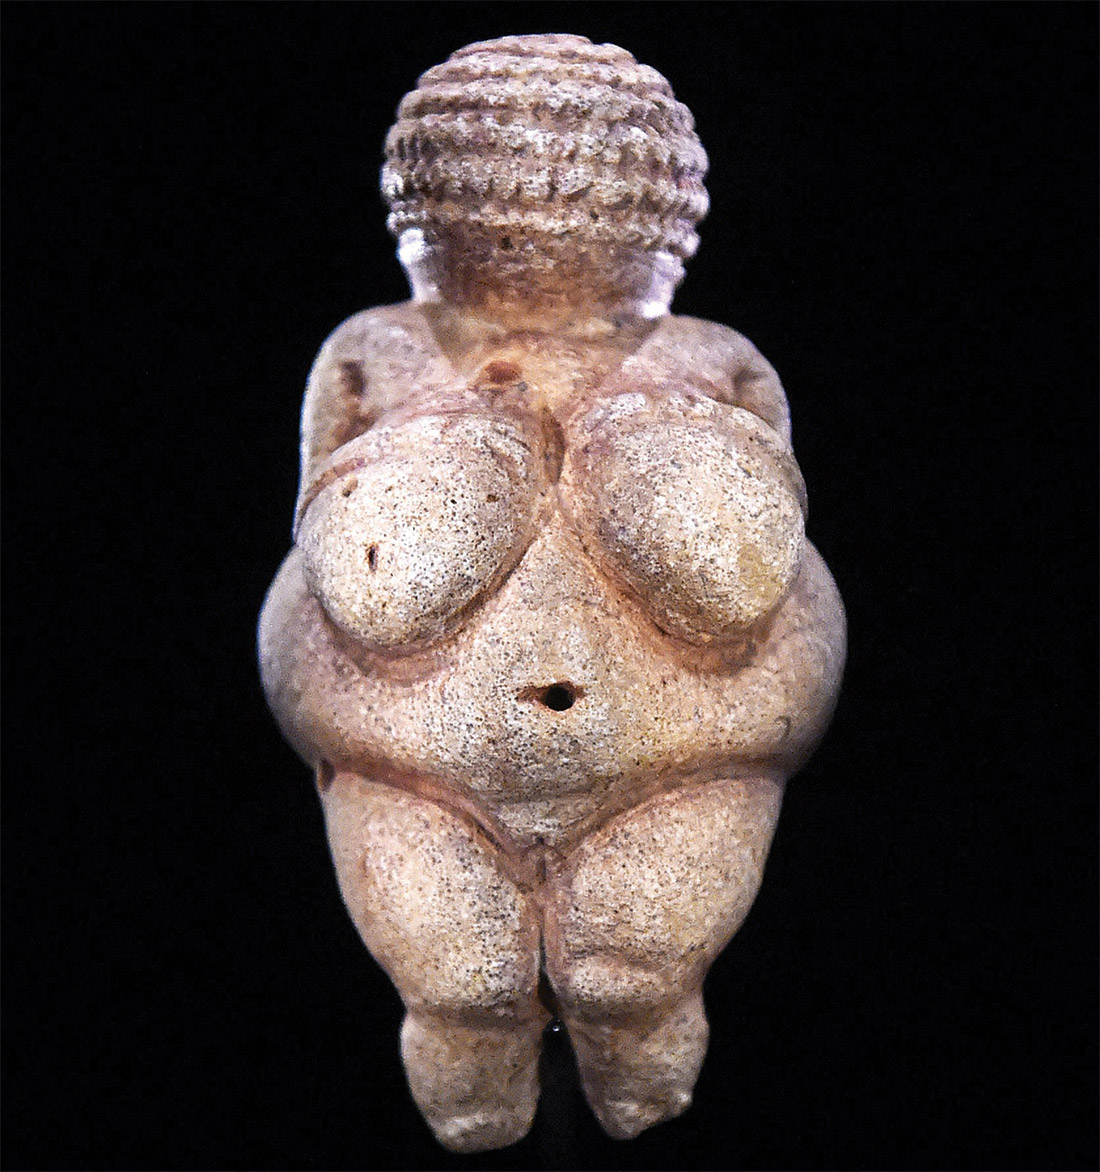 Voluptuous: the Venus of Willendorf, c.28,000-25,000 BC.